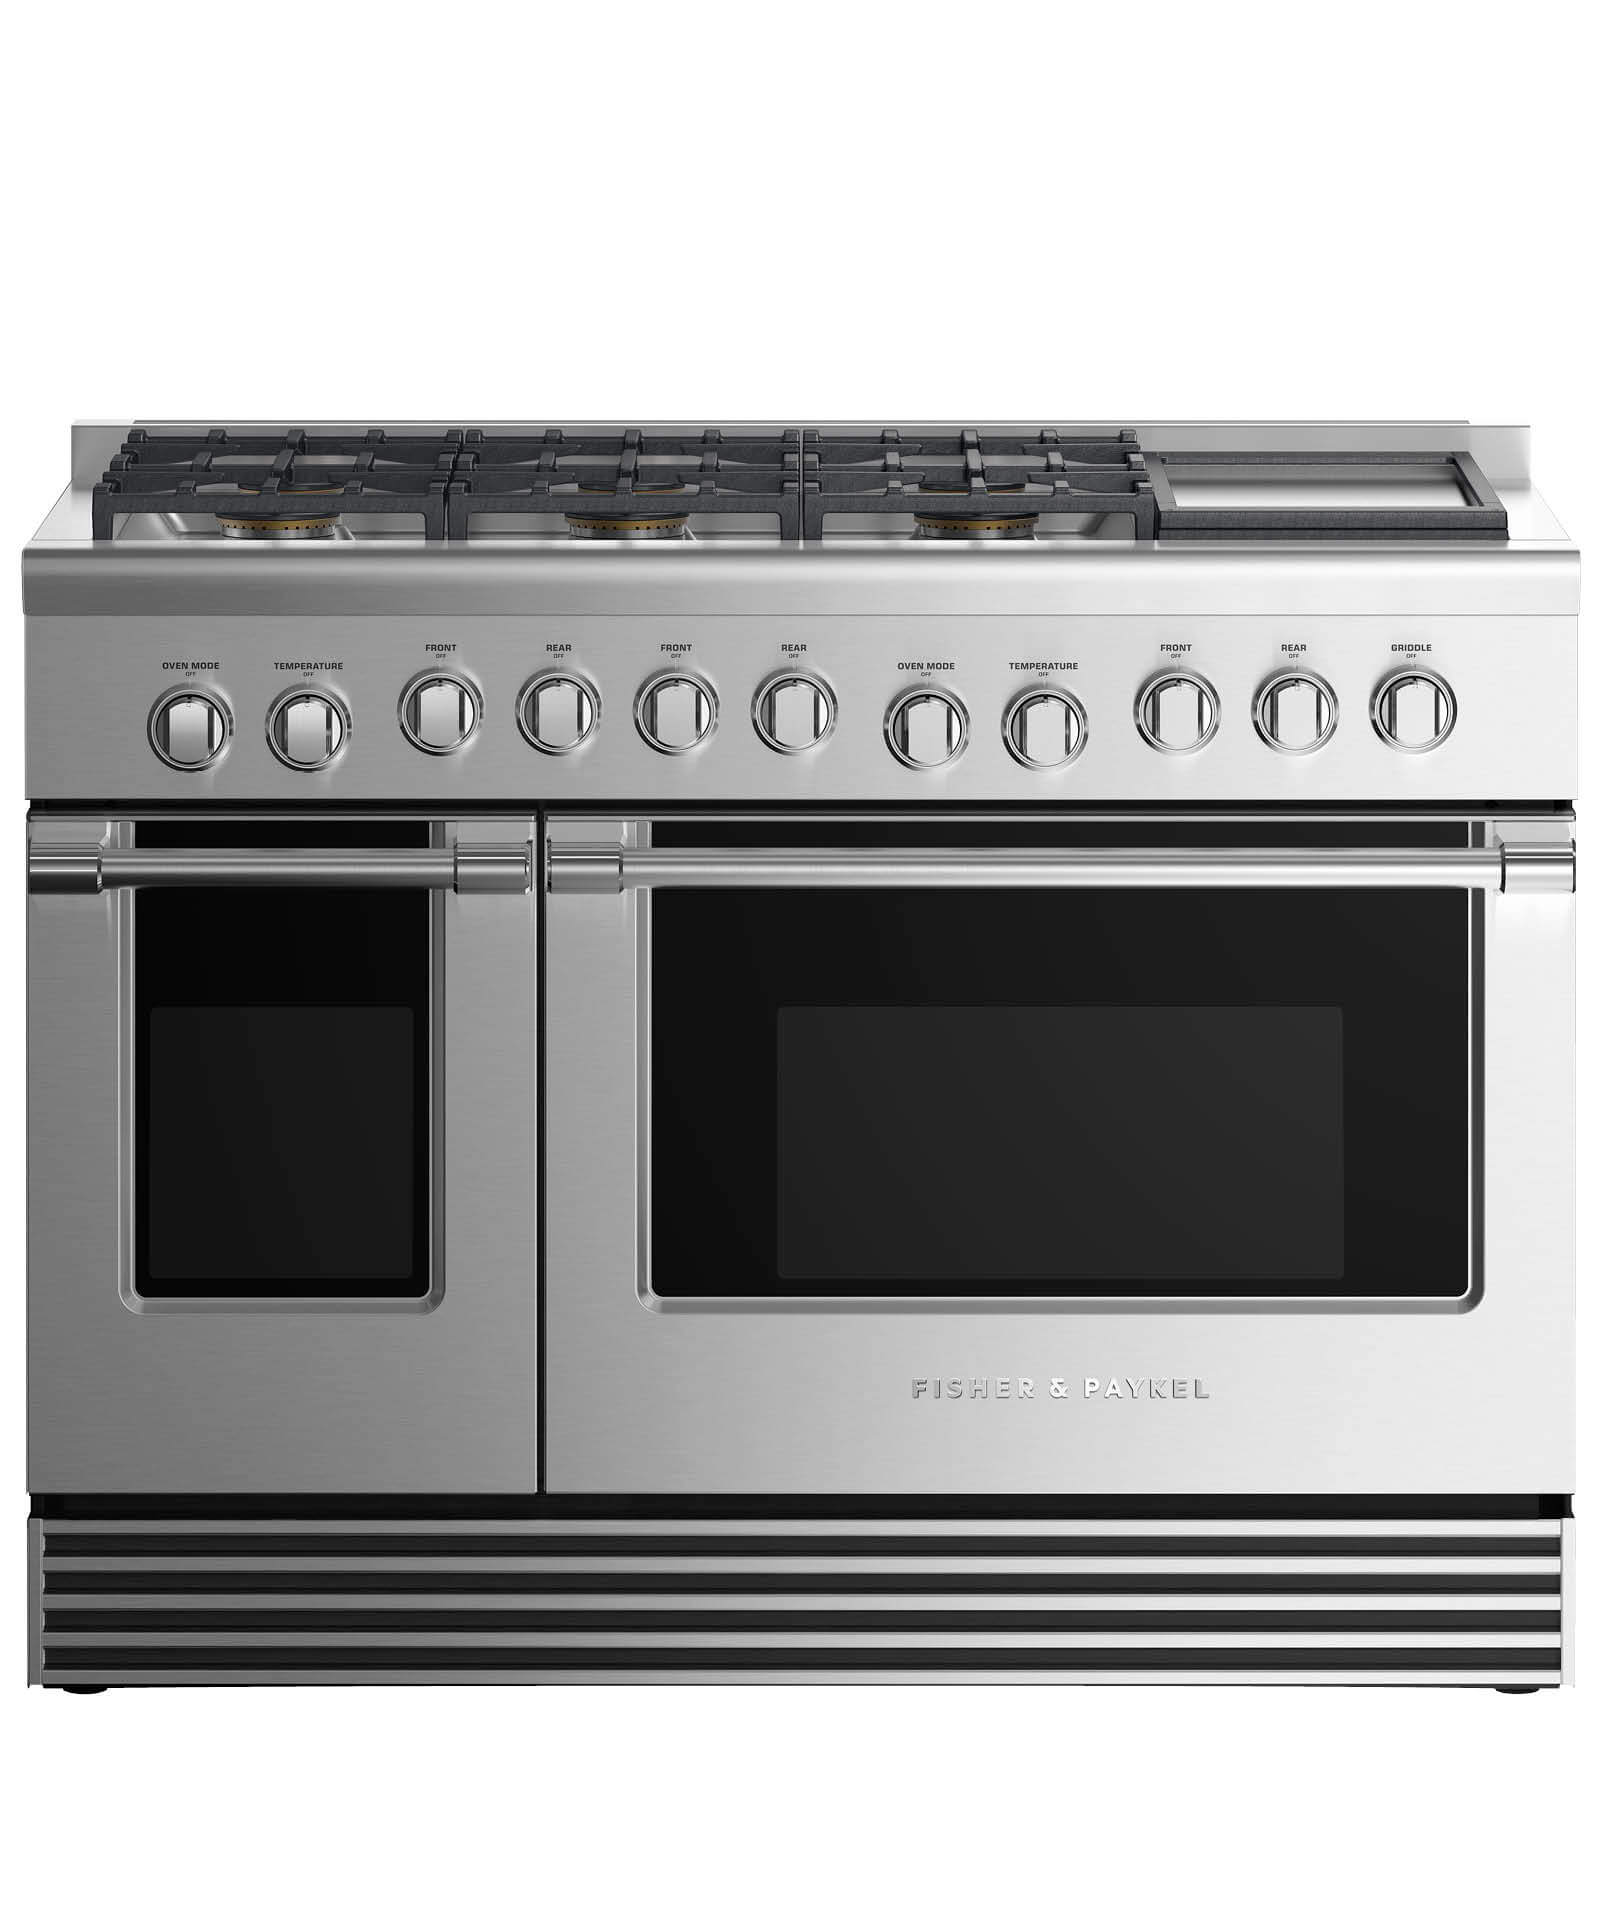 "Fisher and Paykel Dual Fuel Range 48"", 6 Burners with Griddle"